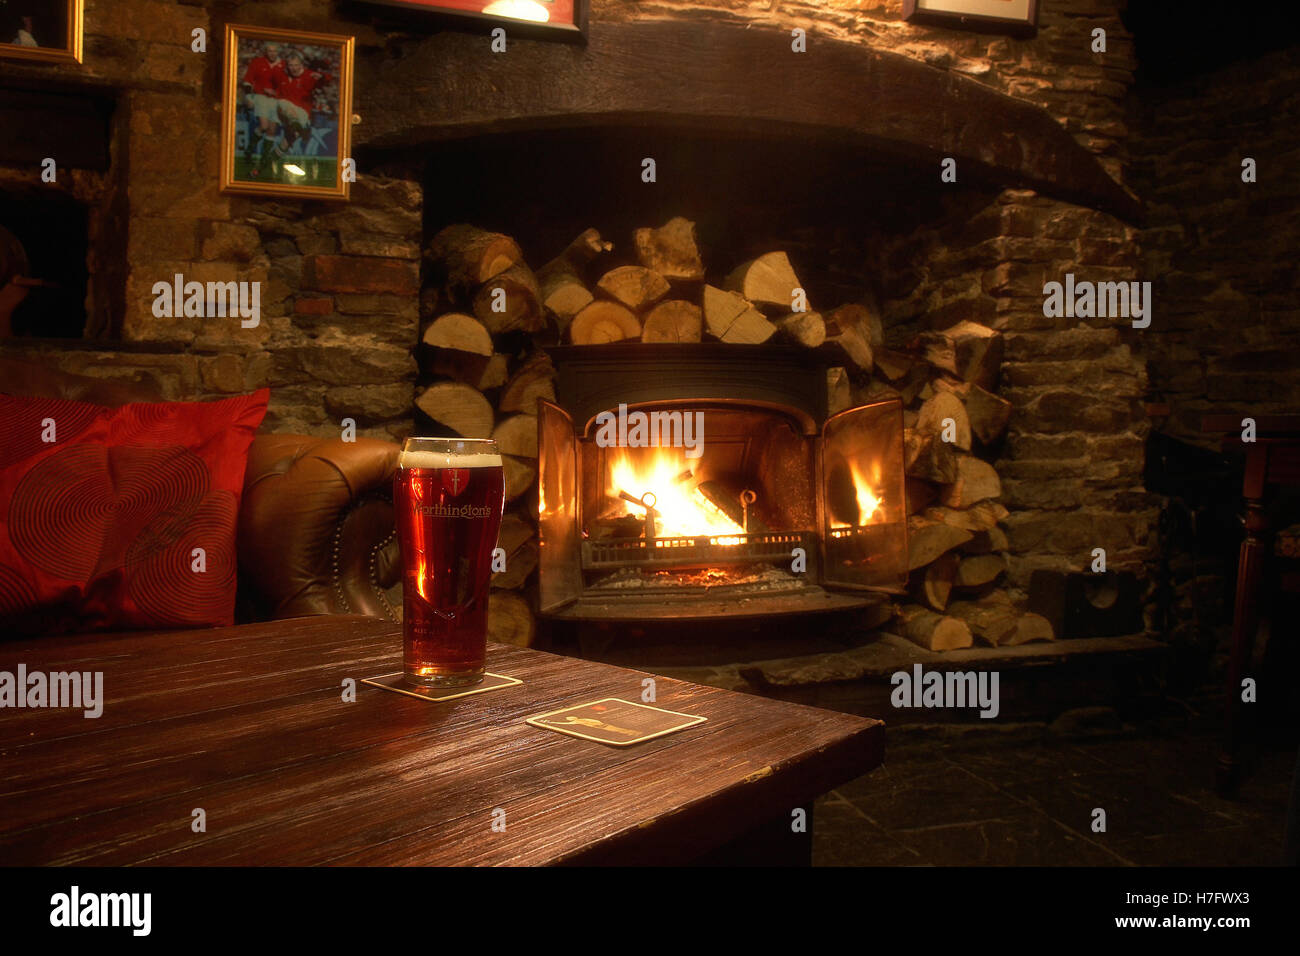 A pint of beer in a cosy pub with a log burner in the UK. - Stock Image